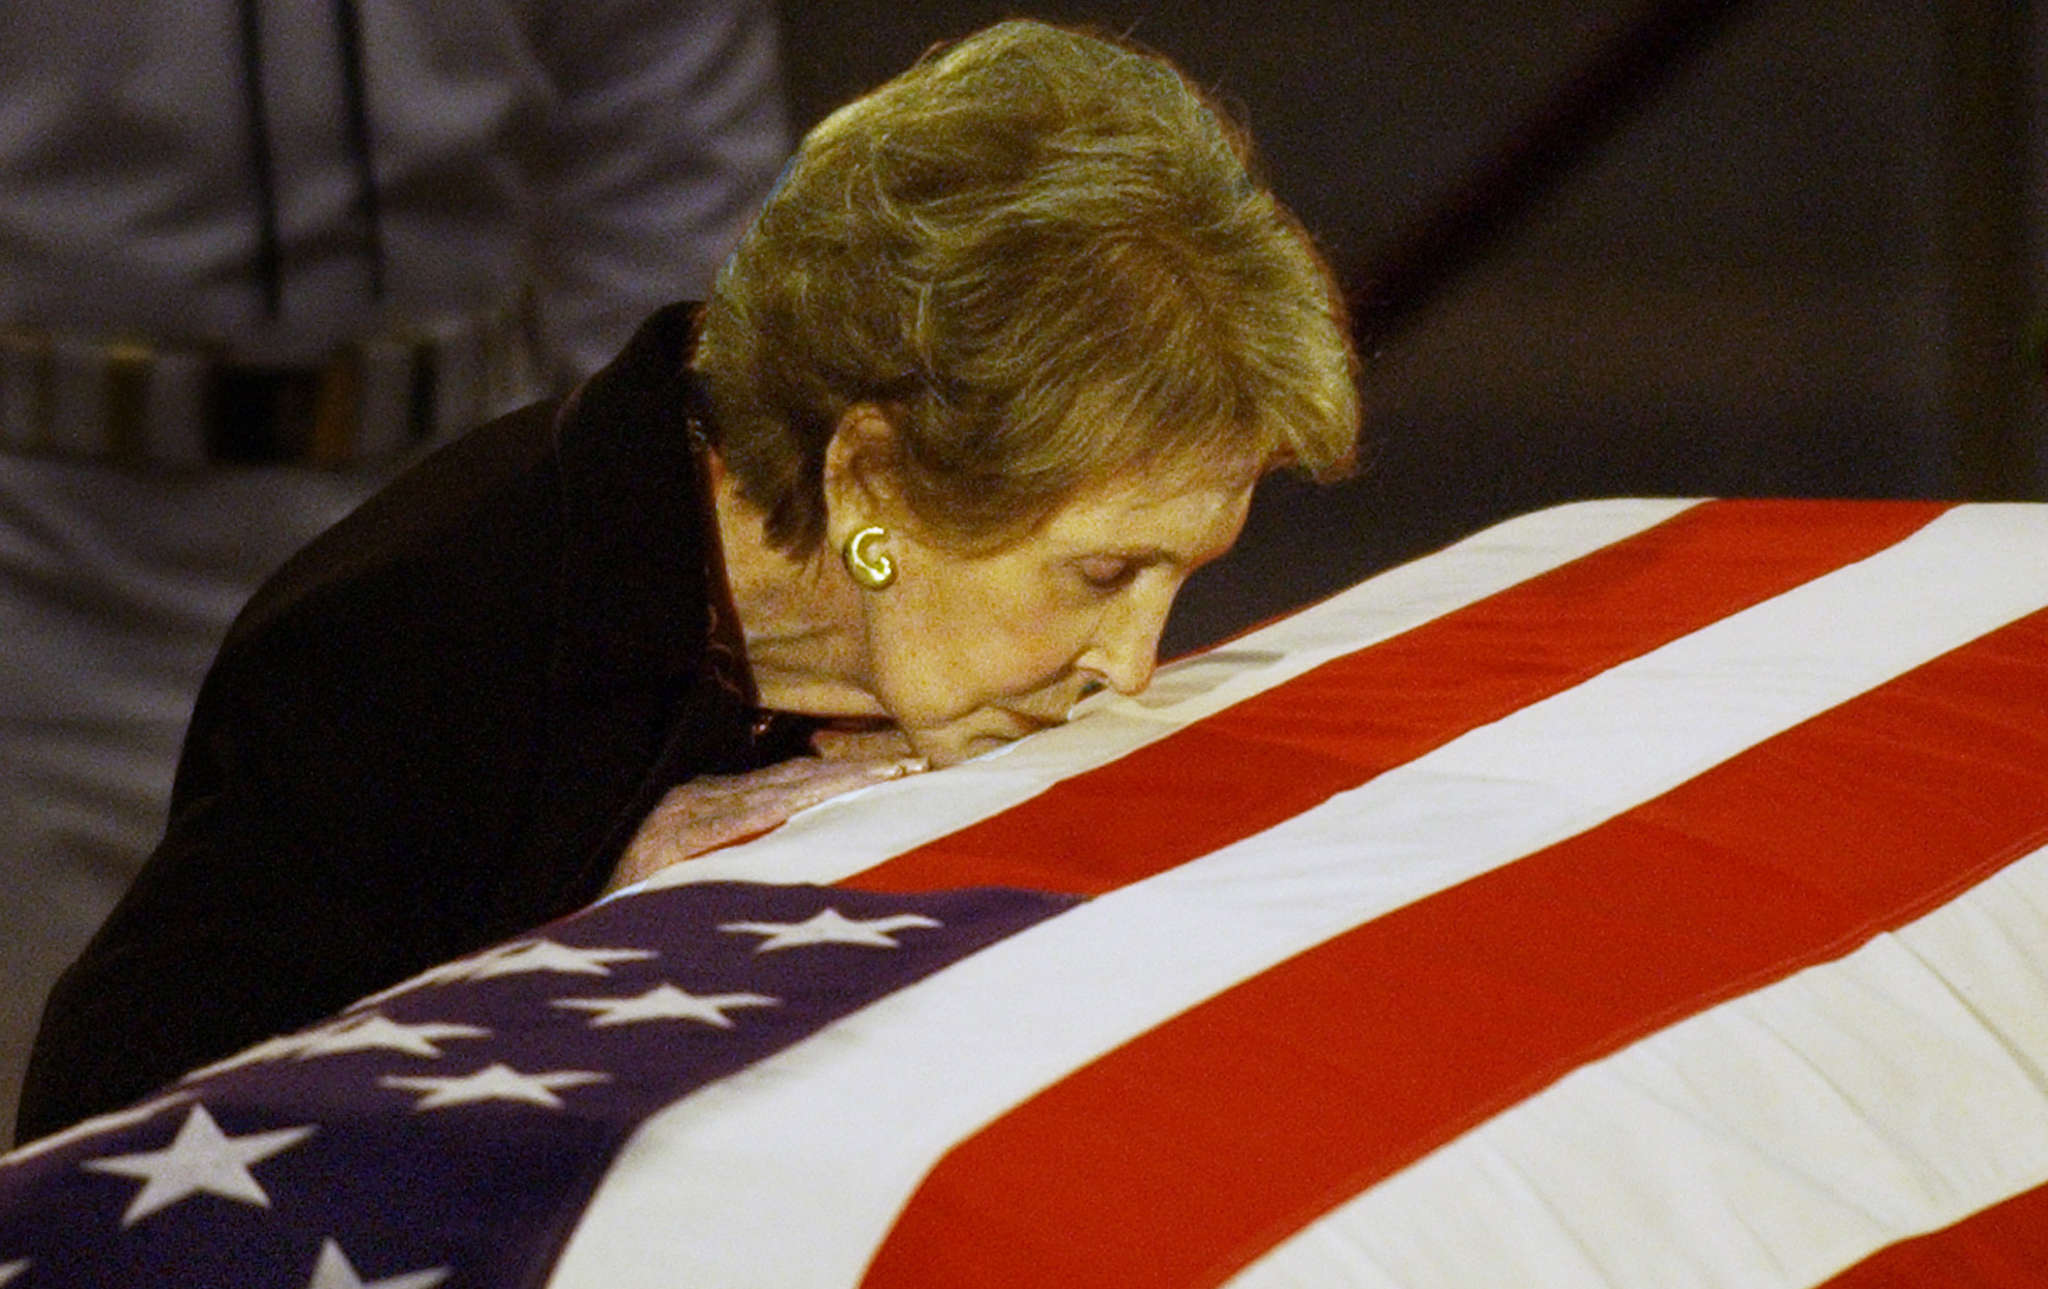 Former first lady Nancy Reagan during funeral services for her husband, President Ronald Reagan, who died in June 2004 at age 93.